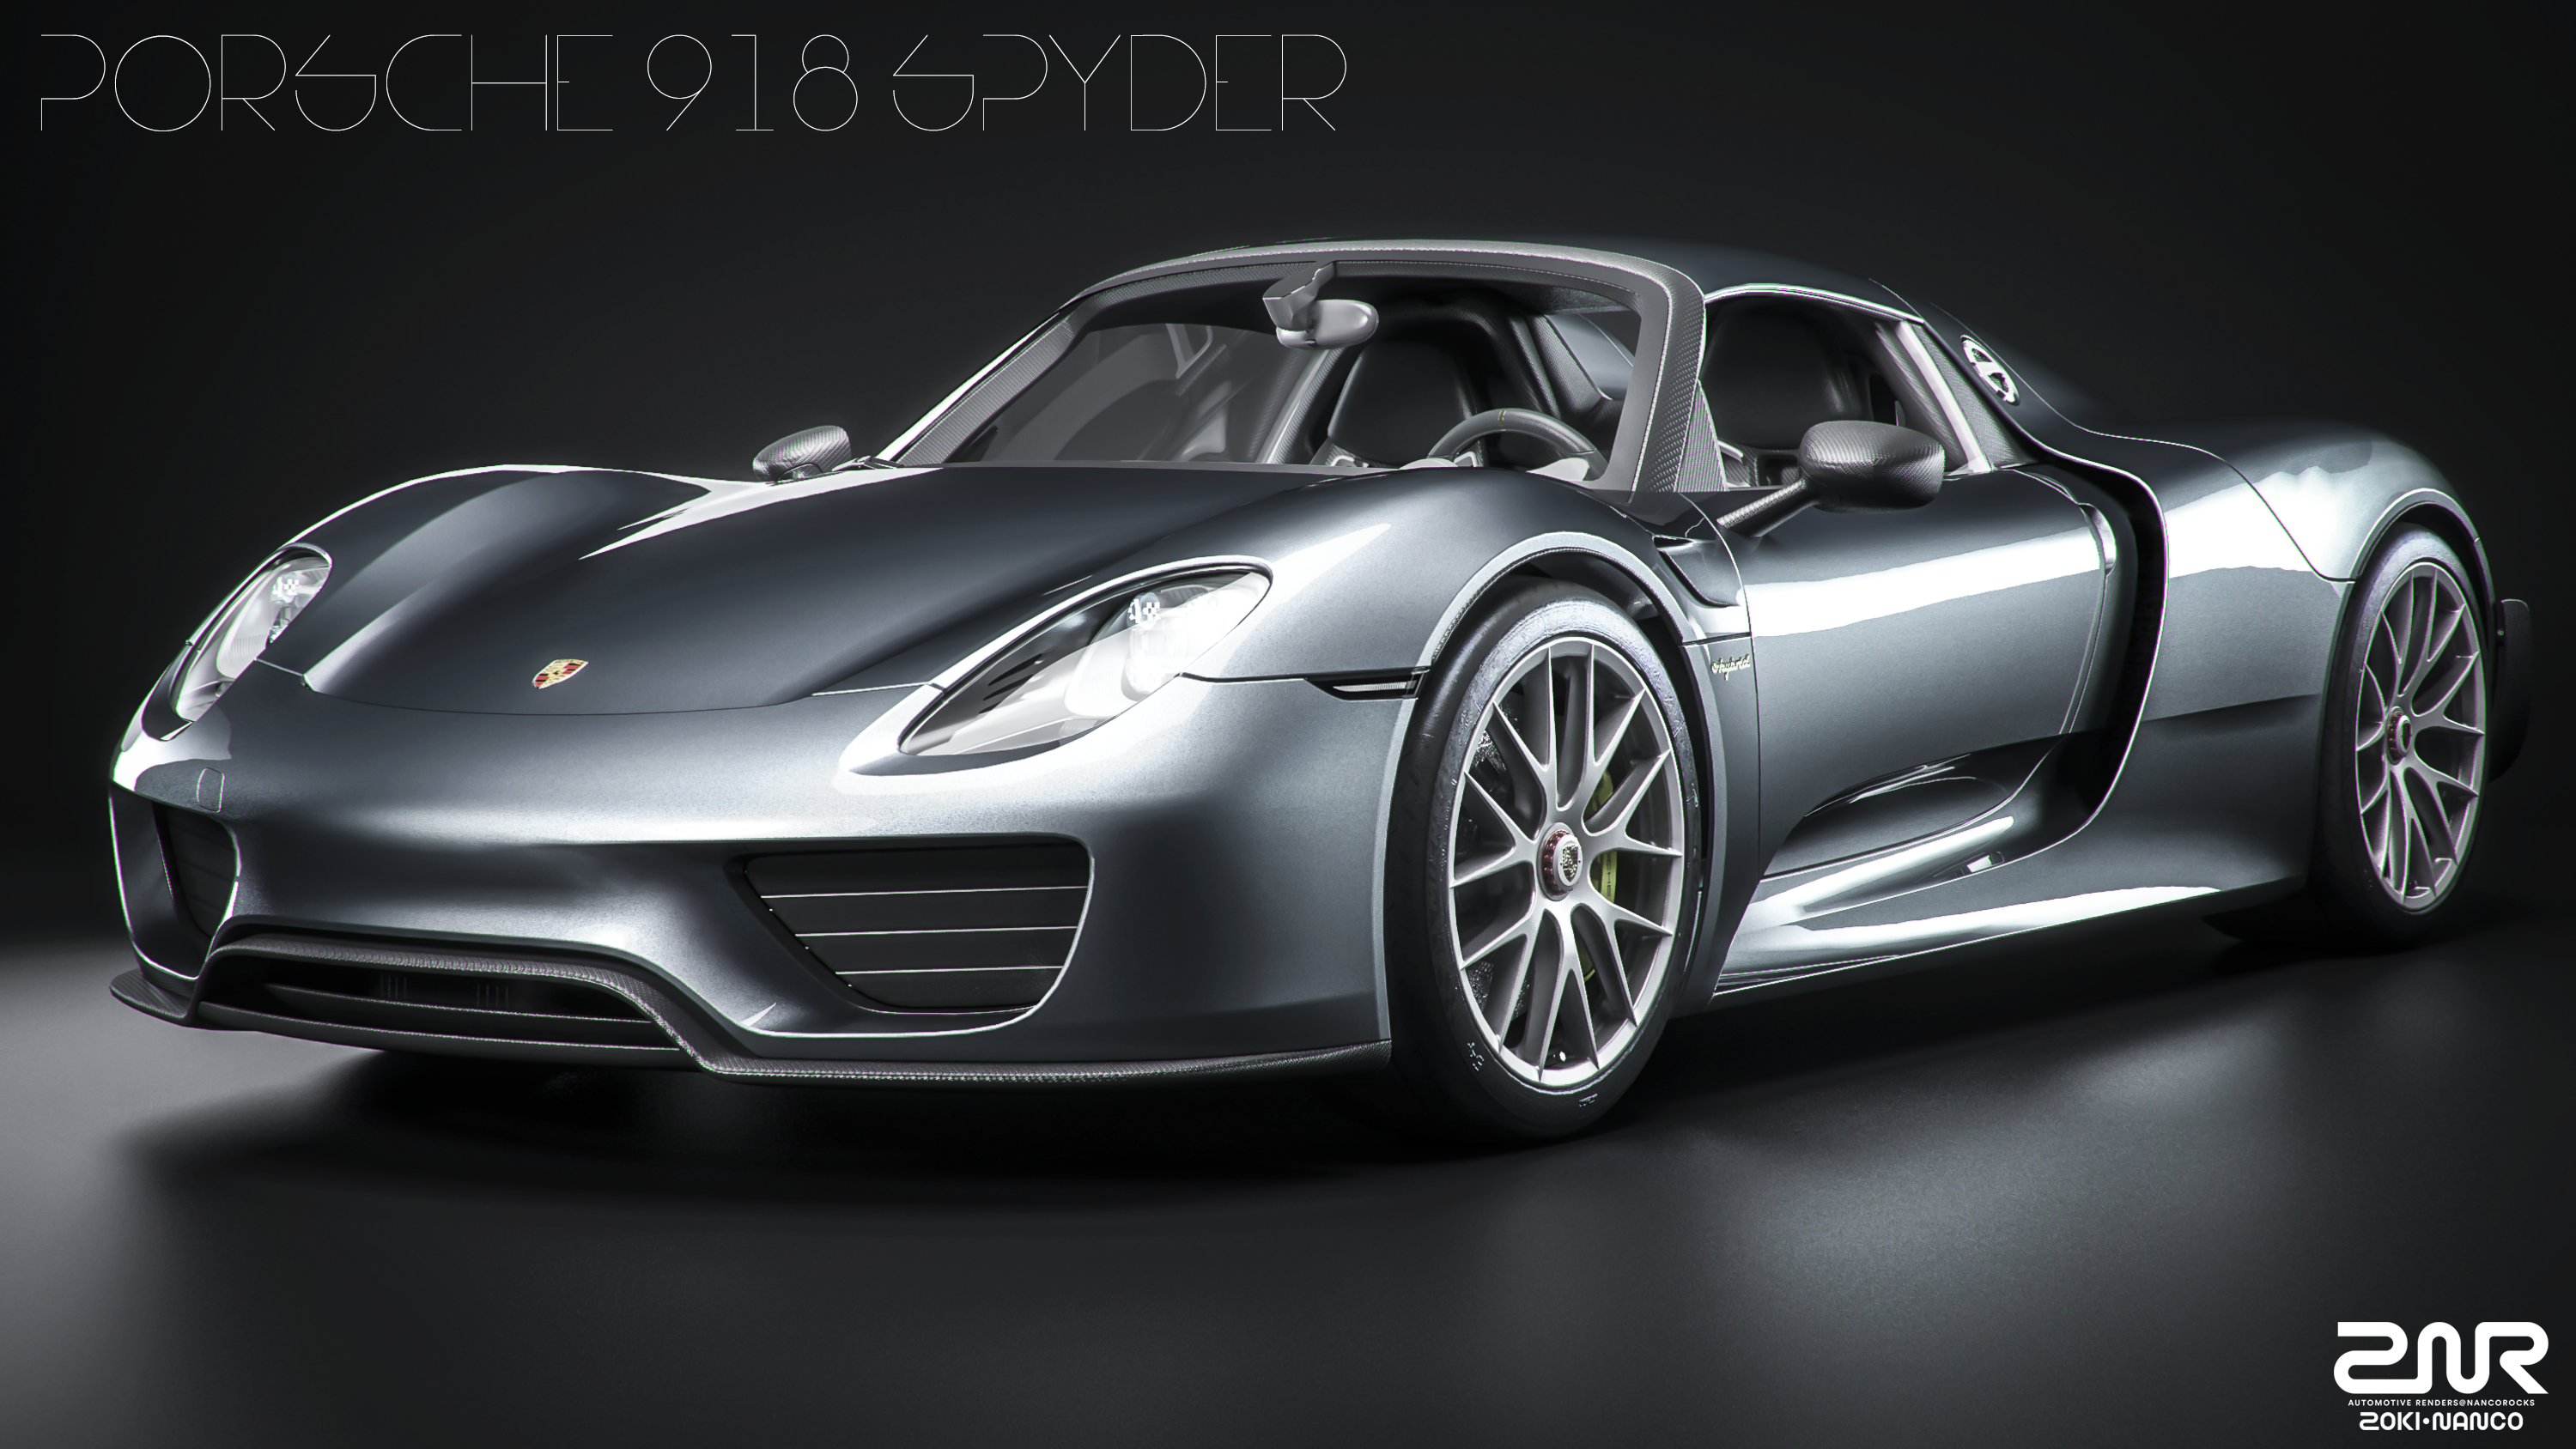 porsche 918 spyder by nancorocks on deviantart. Black Bedroom Furniture Sets. Home Design Ideas